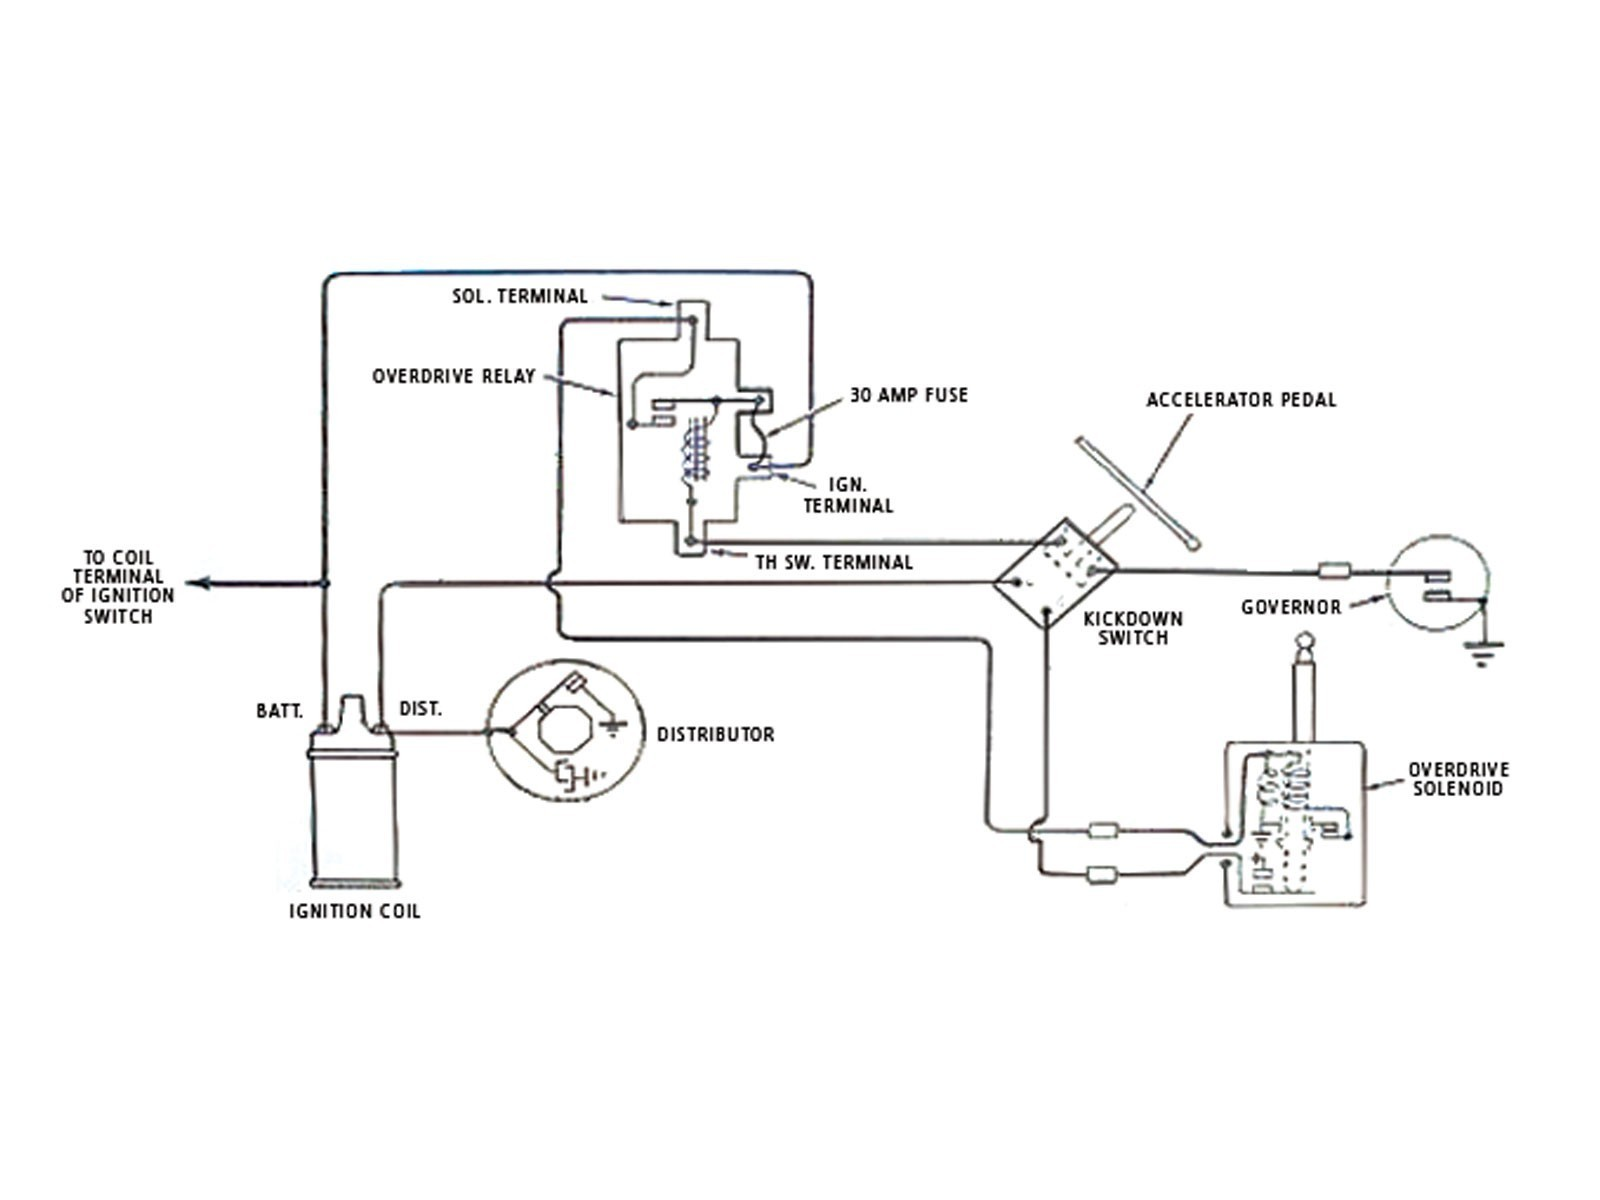 Ignition Coil Wiring Diagram New Basic Od Troubleshooting Chevytalk Free Restoration and Repair